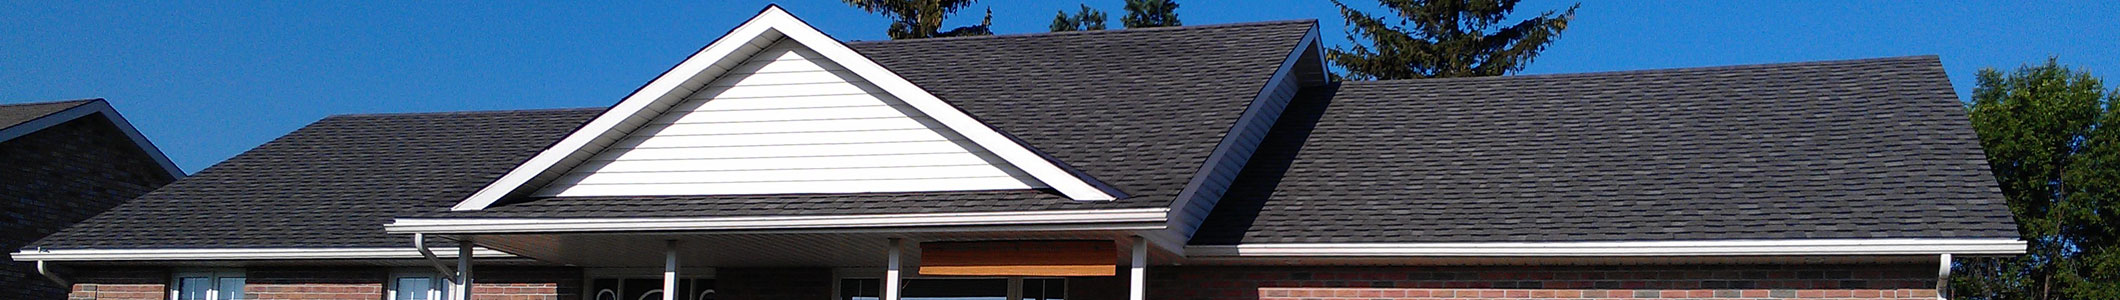 residential roofing header